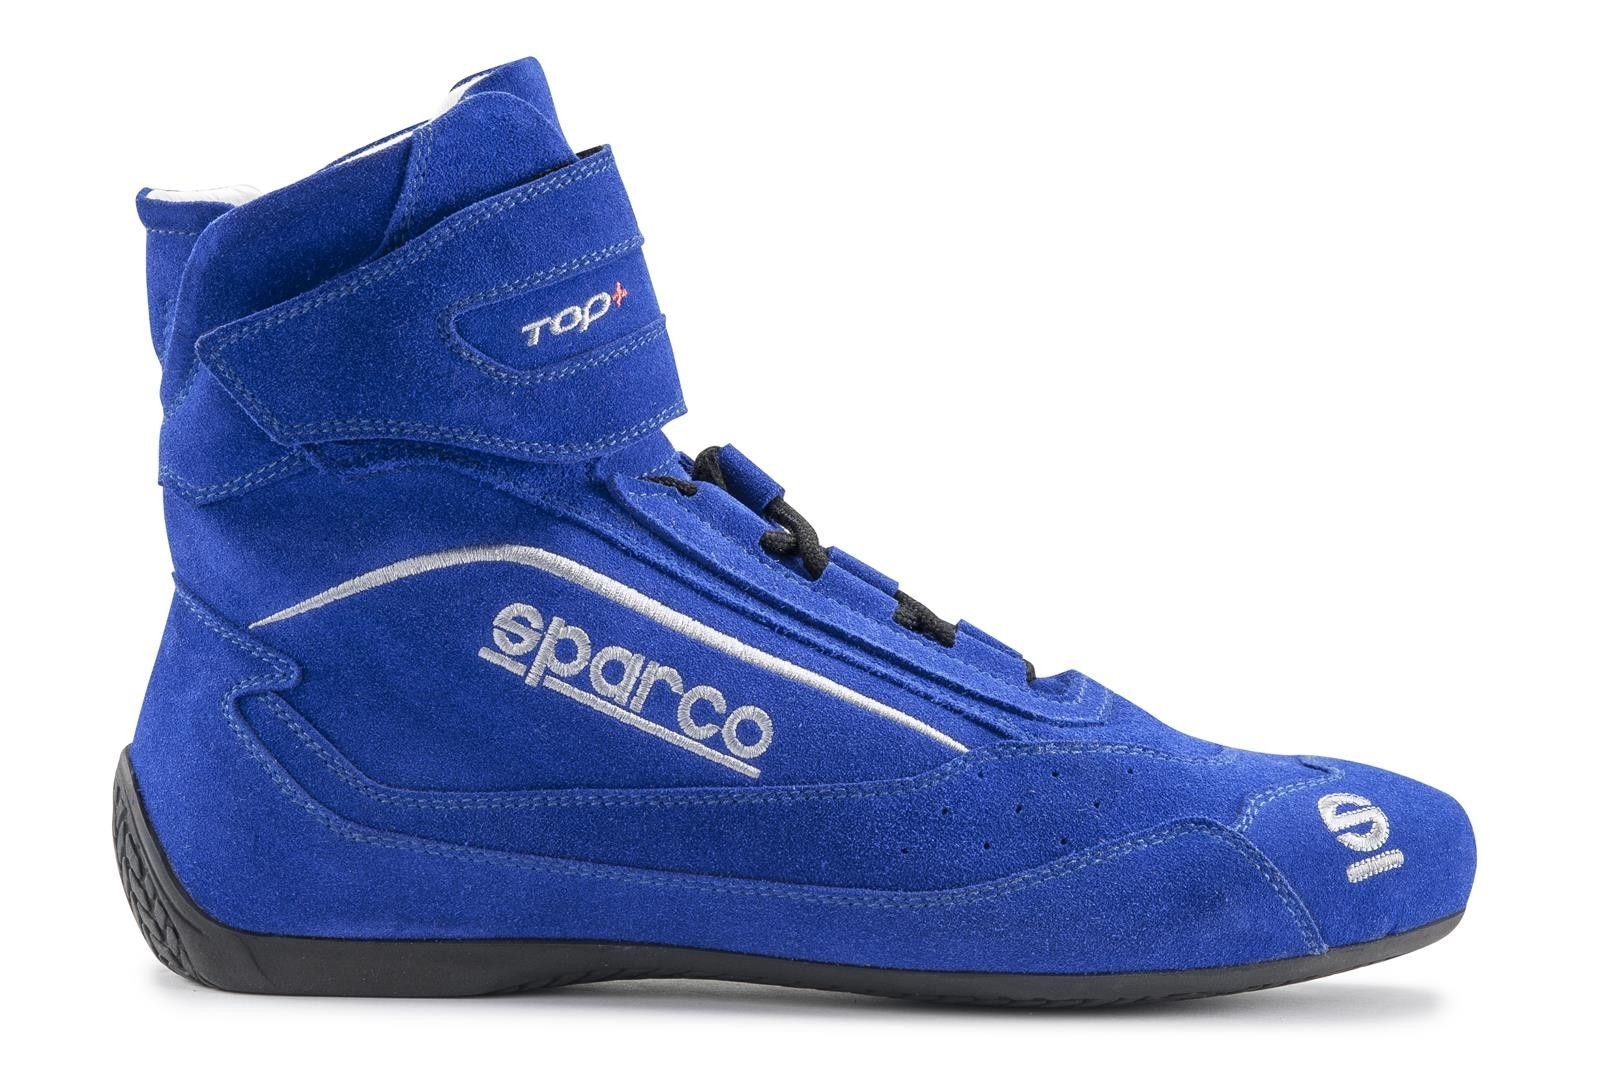 0e44205c19 Sparco Racing Top+ SH-5 Racing Shoes - High Top - Shoes - Racers - SafeRacer